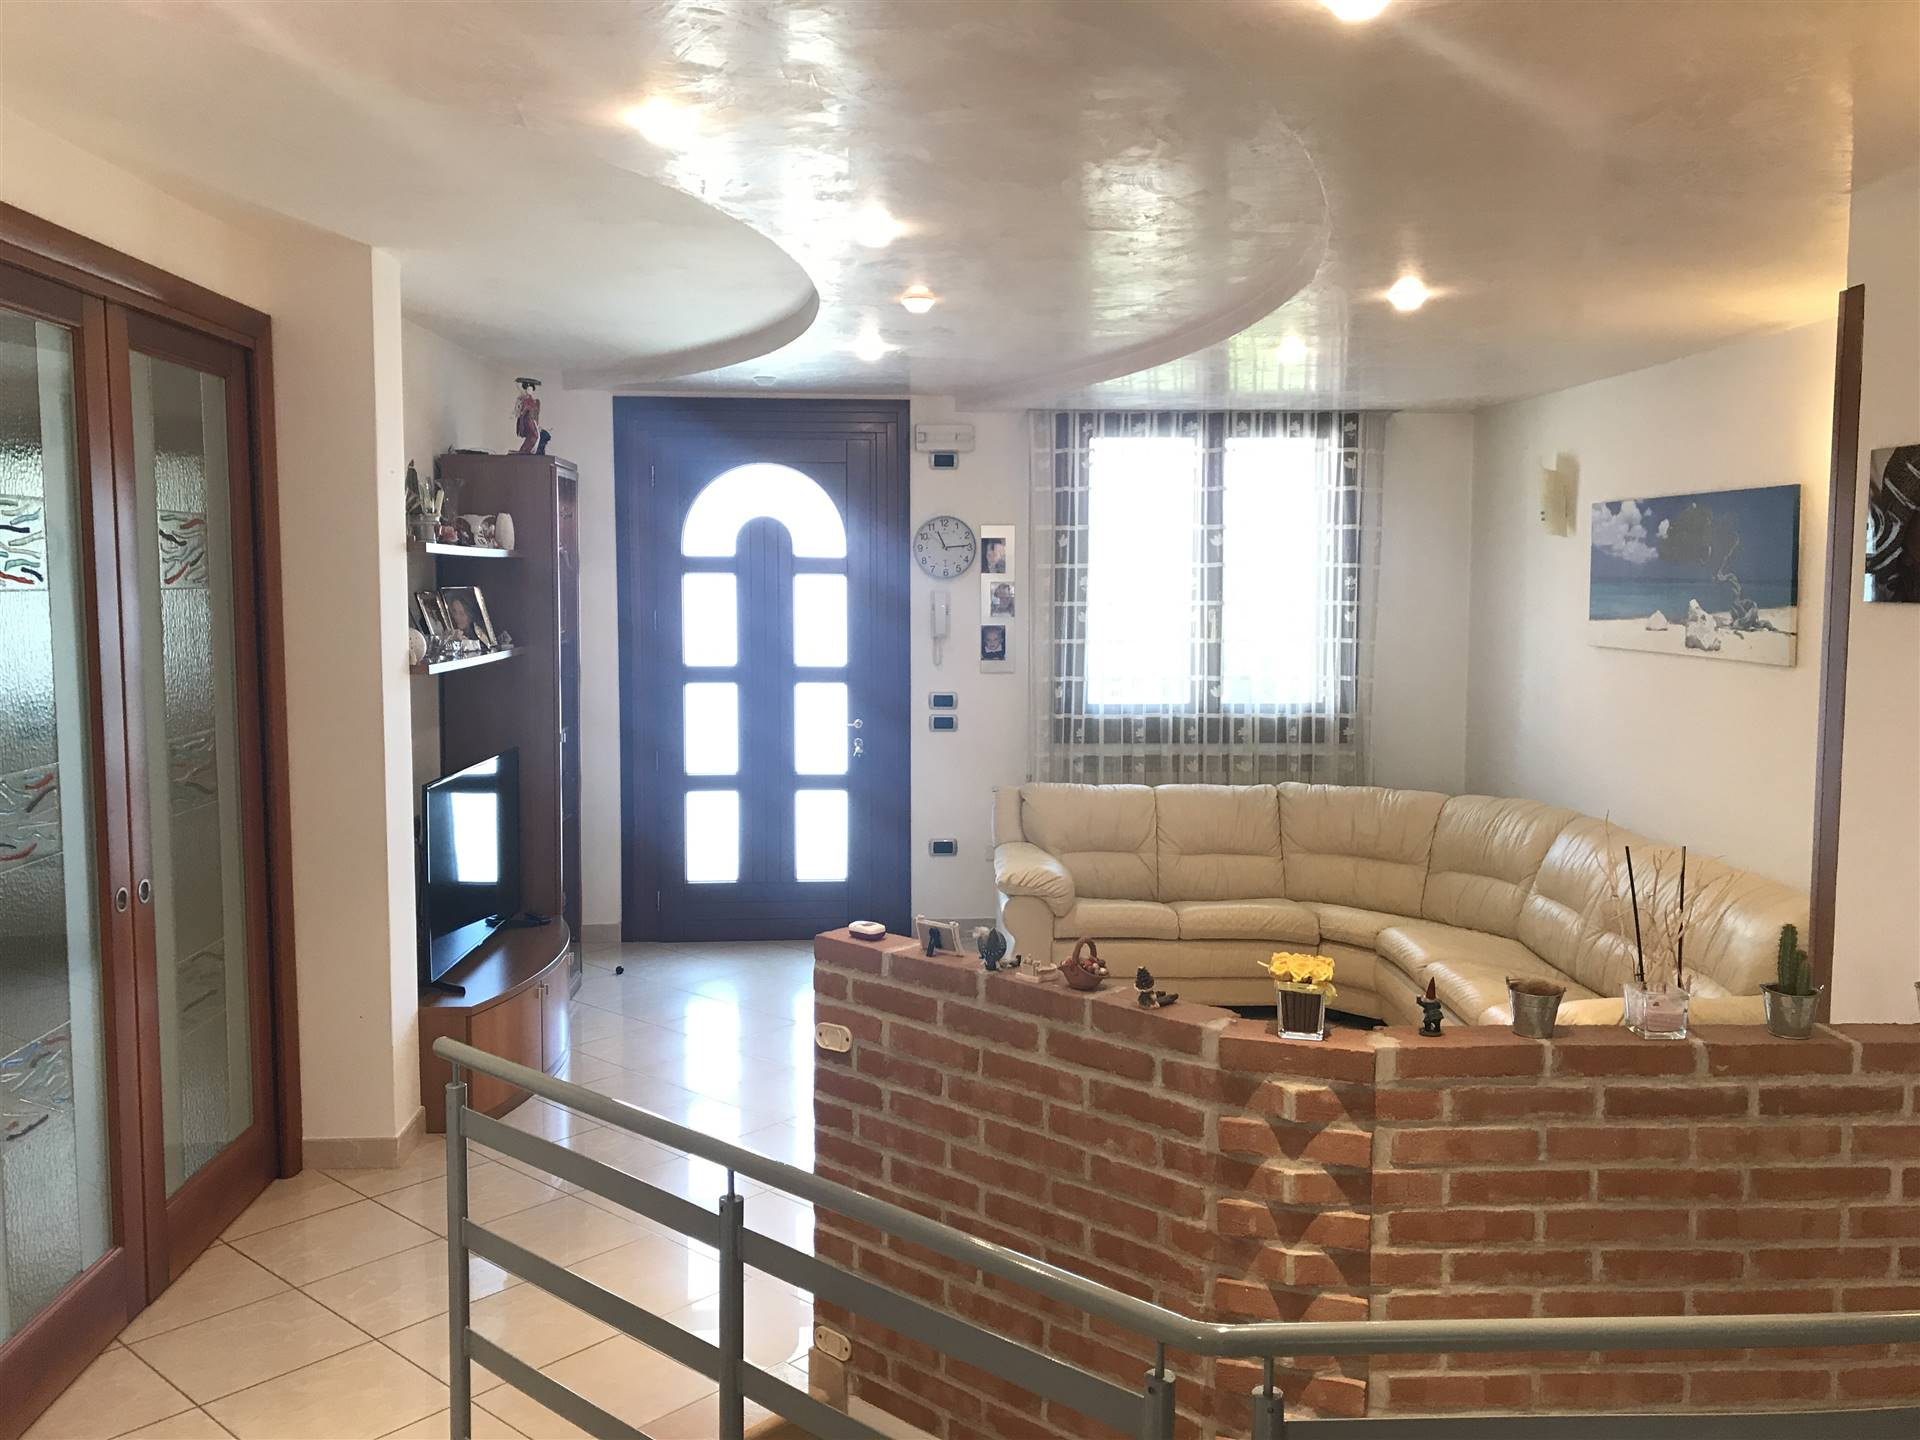 VALLI, CHIOGGIA, Detached house for sale of 200 Sq. mt., Good condition, Heating Individual heating system, Energetic class: G, placed at Raised,